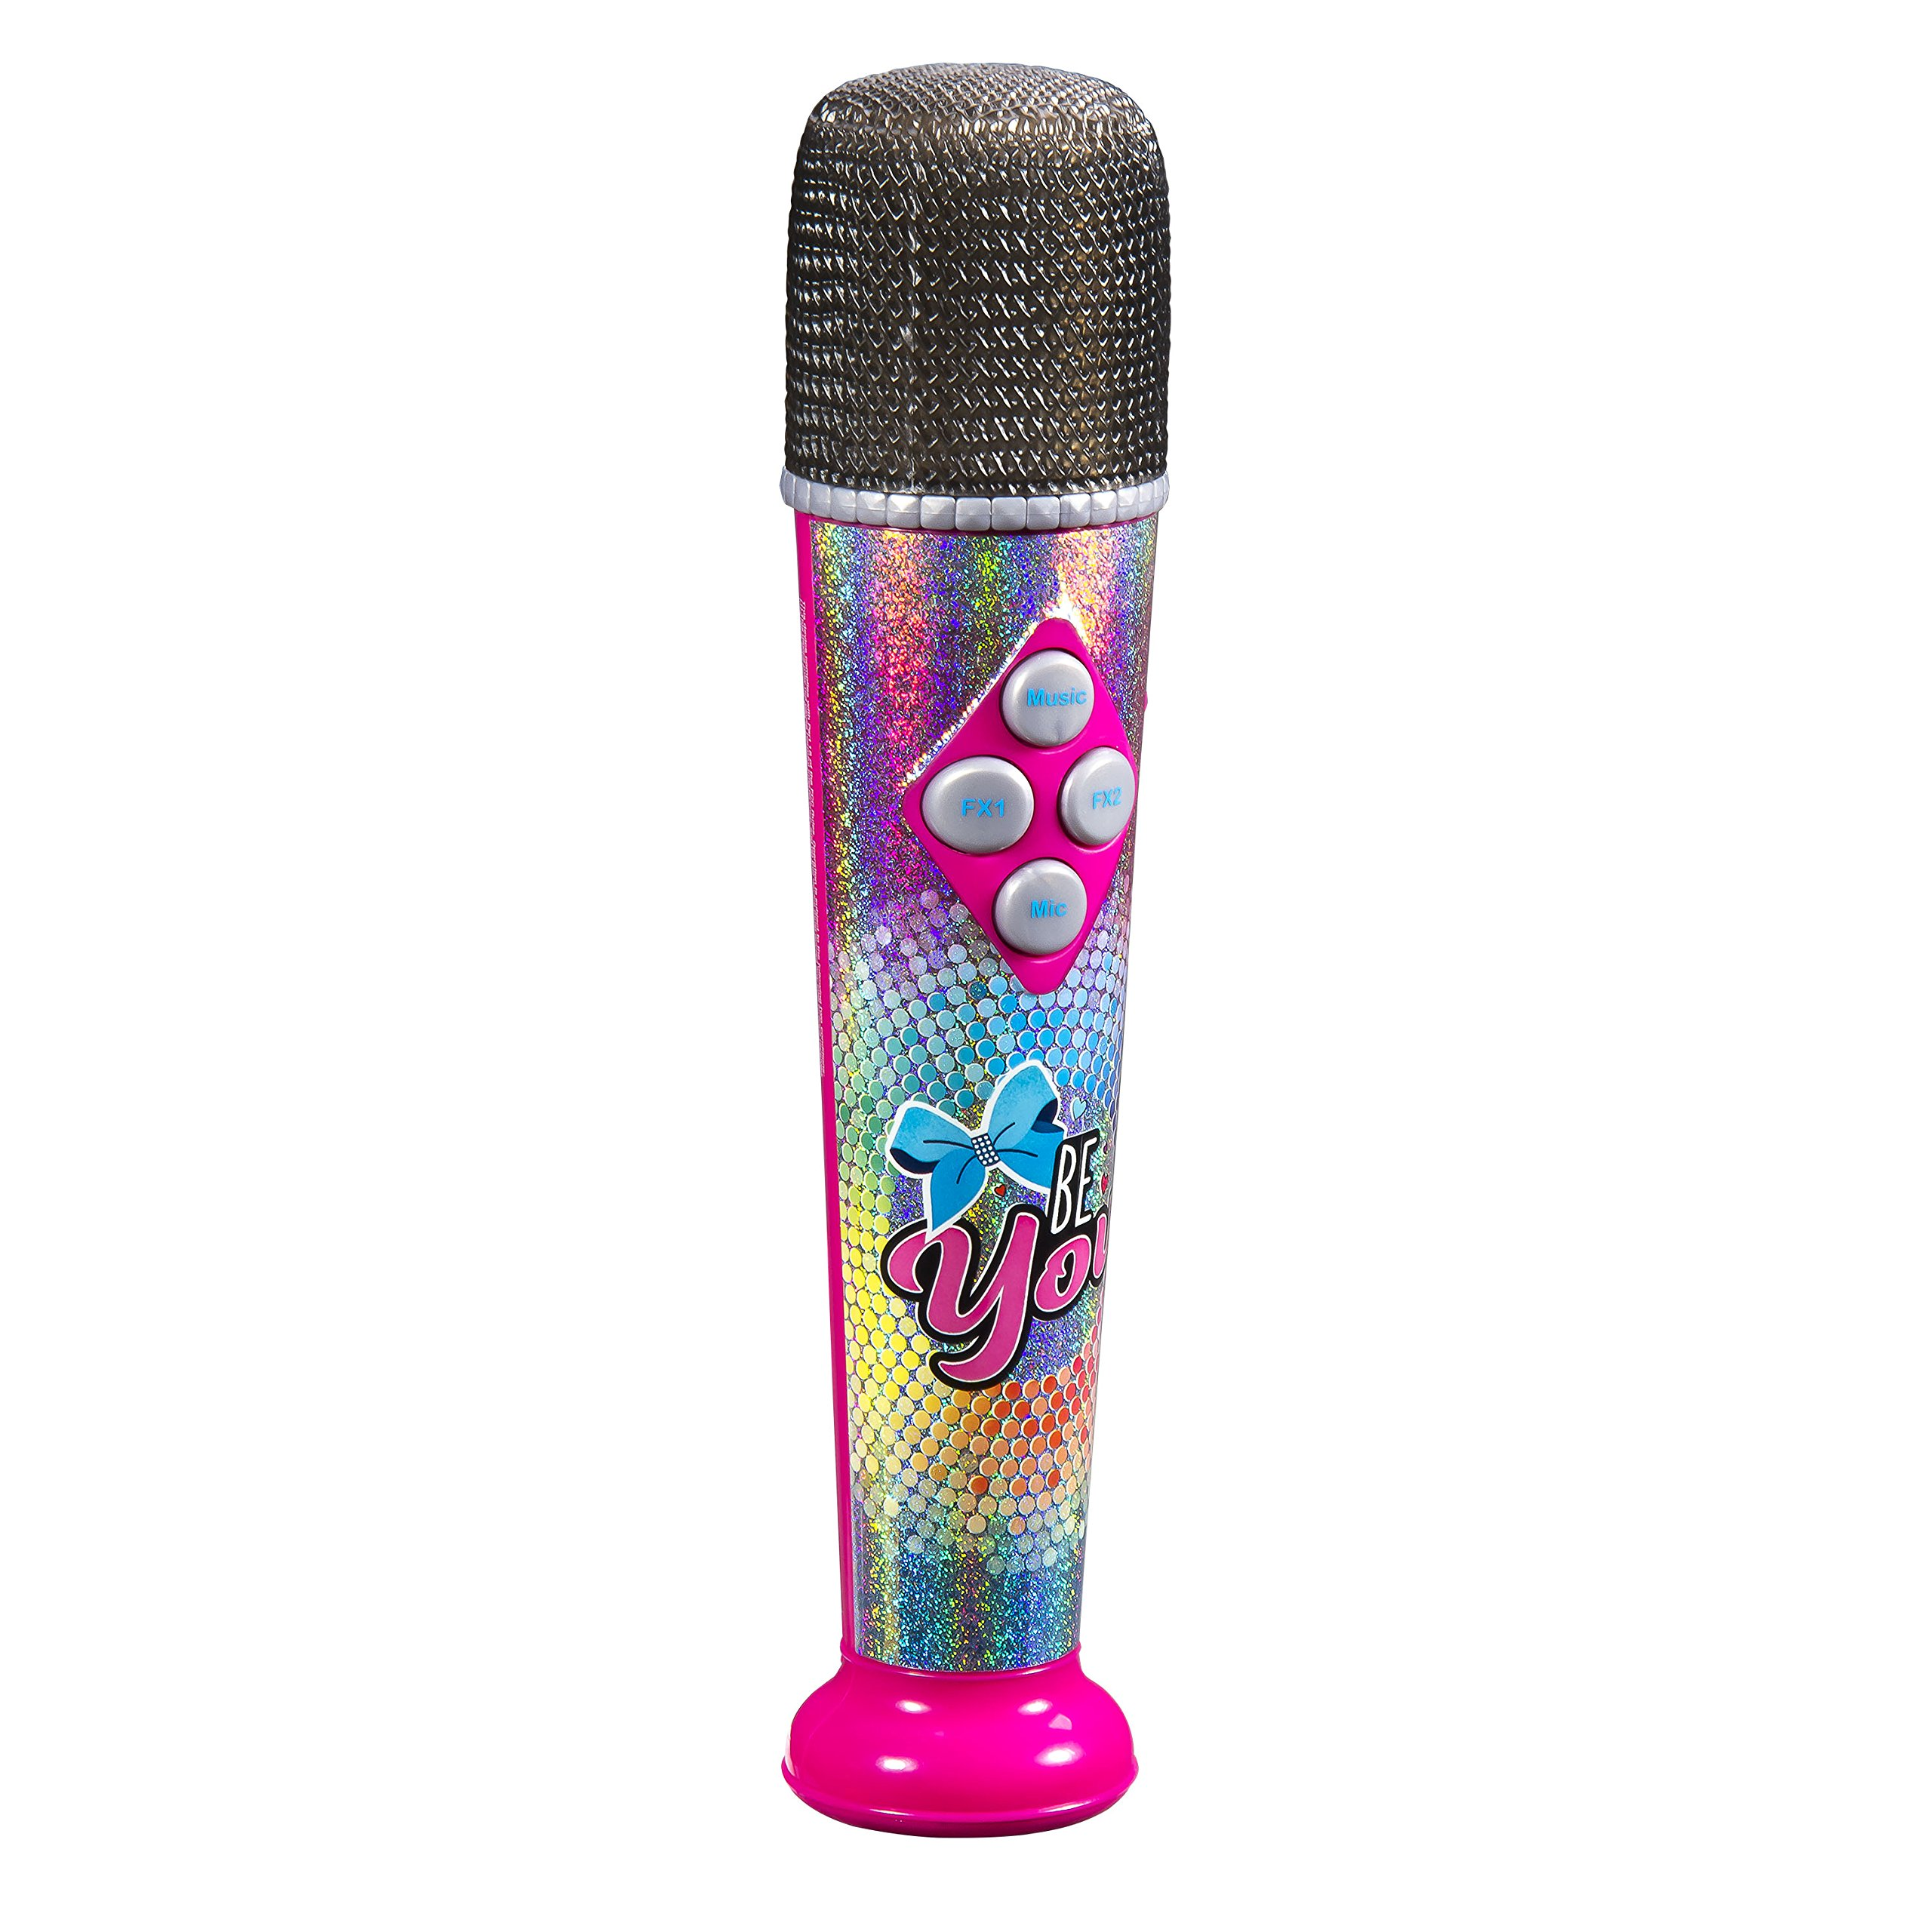 Jojo Siwa Sing Along MP3 Microphone with Built in Speaker Sing to The Built in Song or Connect to Your MP3 Player and Sing to Whatever You Like with The Real Working MIc by eKids (Image #3)